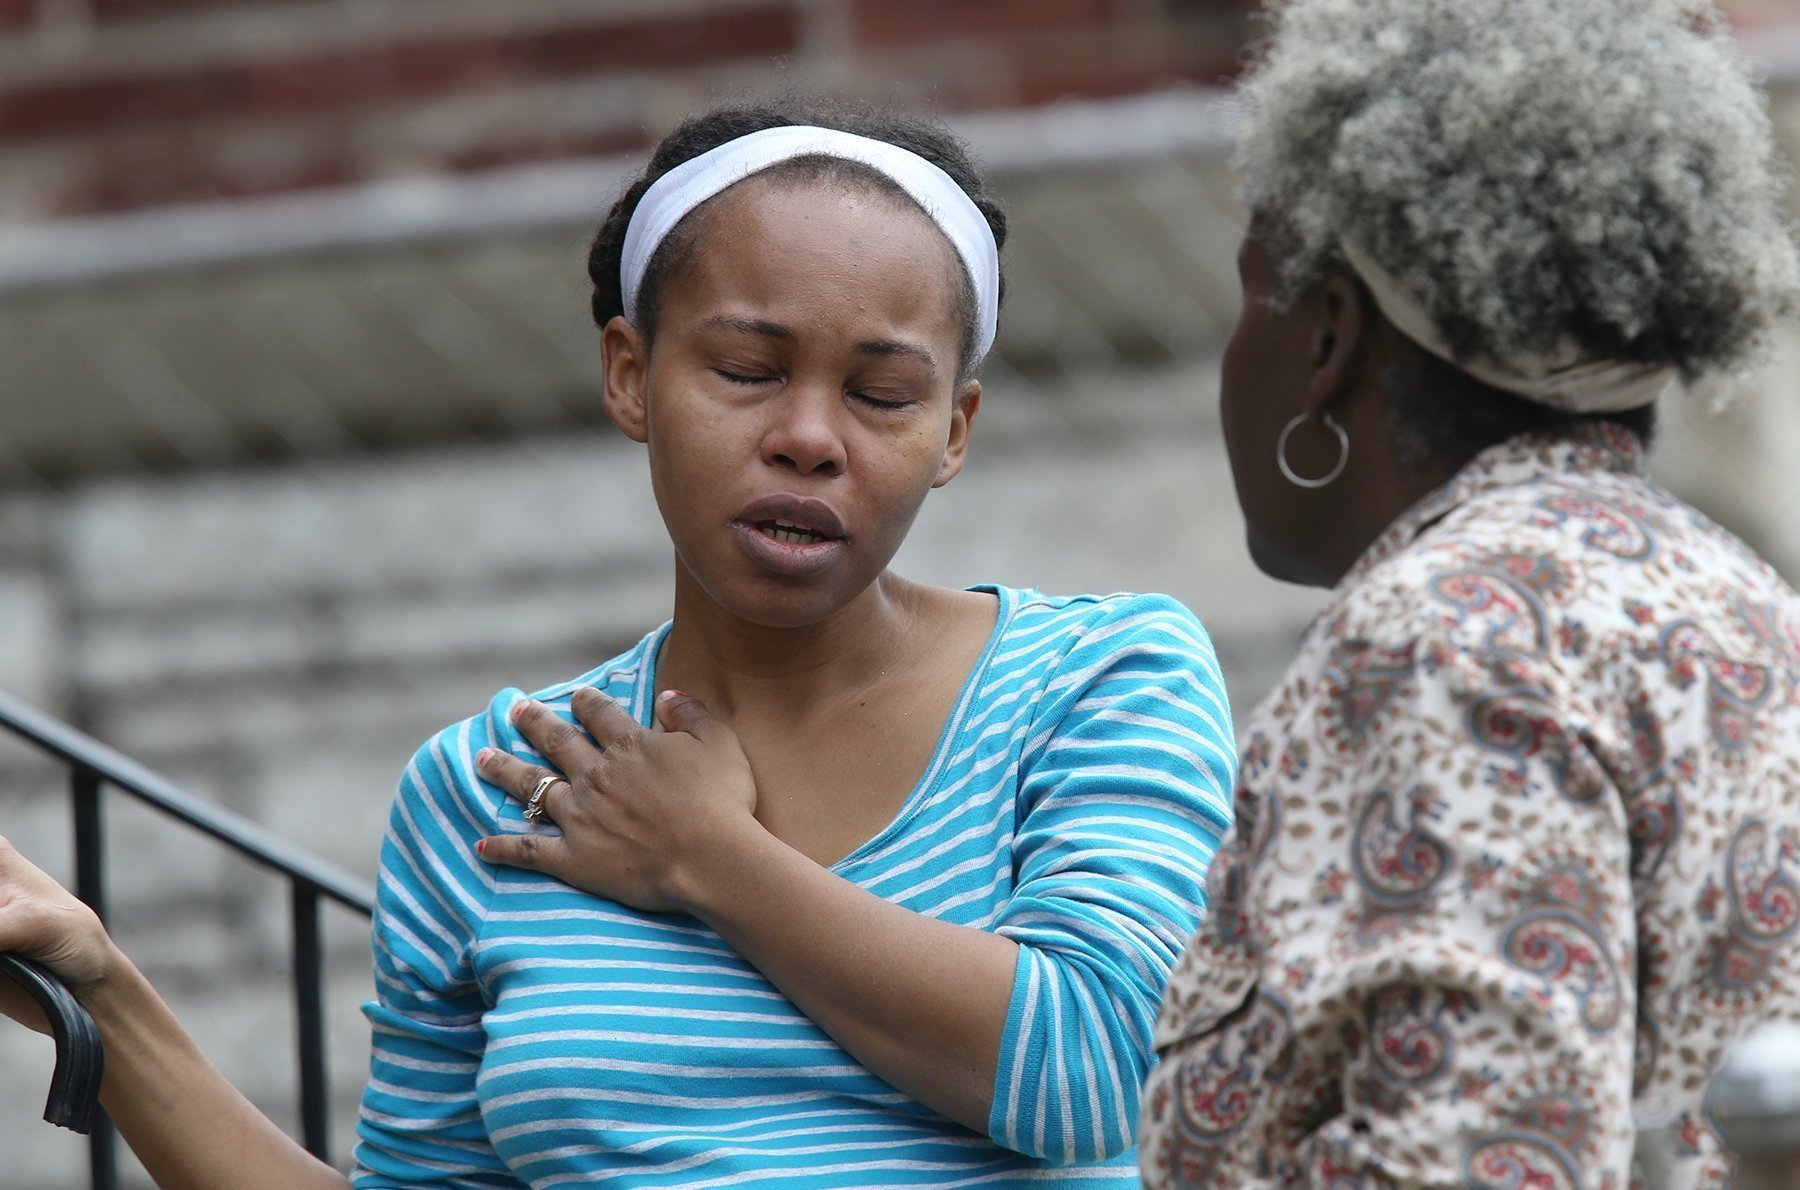 CORRECTION Utility Workers Killed-1 CORRECTS FIRST NAME TO MANYIKA Manyika McCoy, left, cries while she talks to her mother Alice Spann, Thursday, April 20, 2017, in St. Louis. McCoy had just been talking to two Laclede Gas Co. workers just before they were killed by a man who walked up and started shooting. (J.B. Forbes/St. Louis Post-Dispatch via AP)